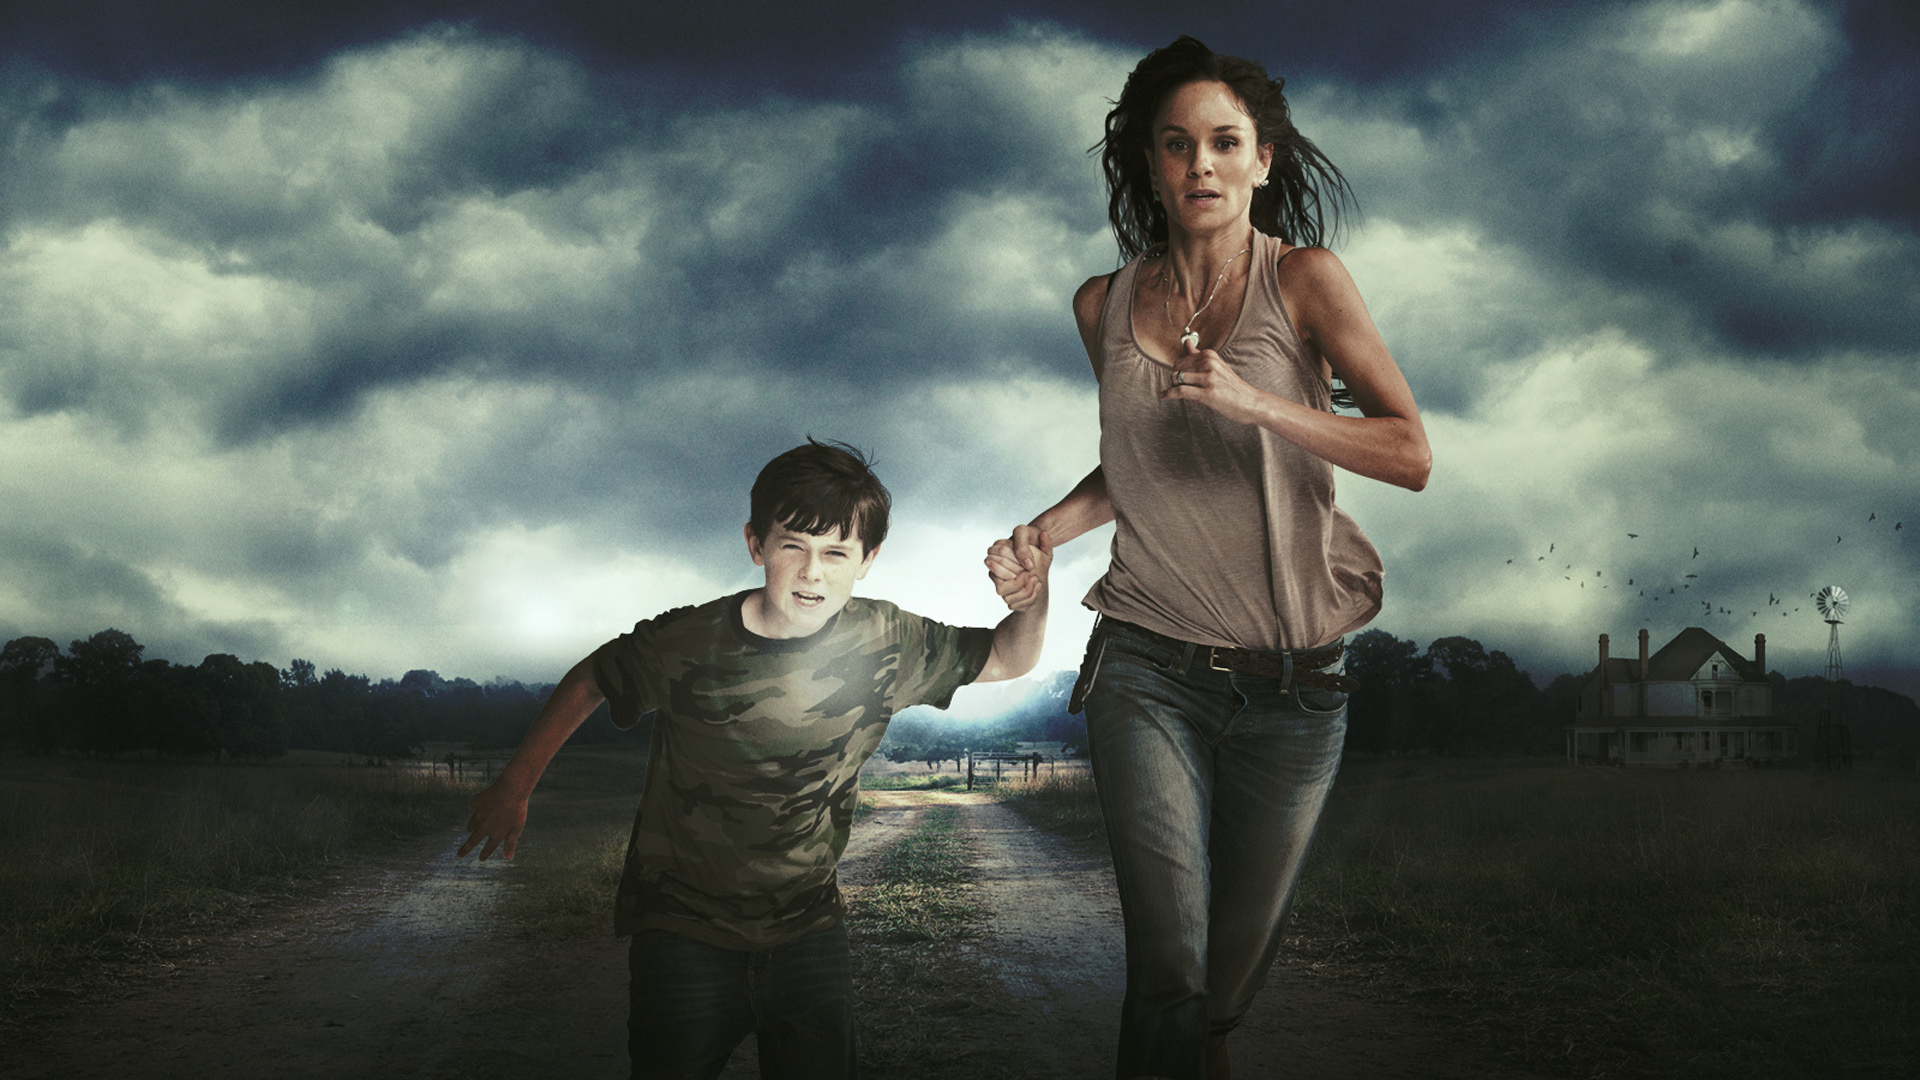 Lori Grimes Wallpapers HQ